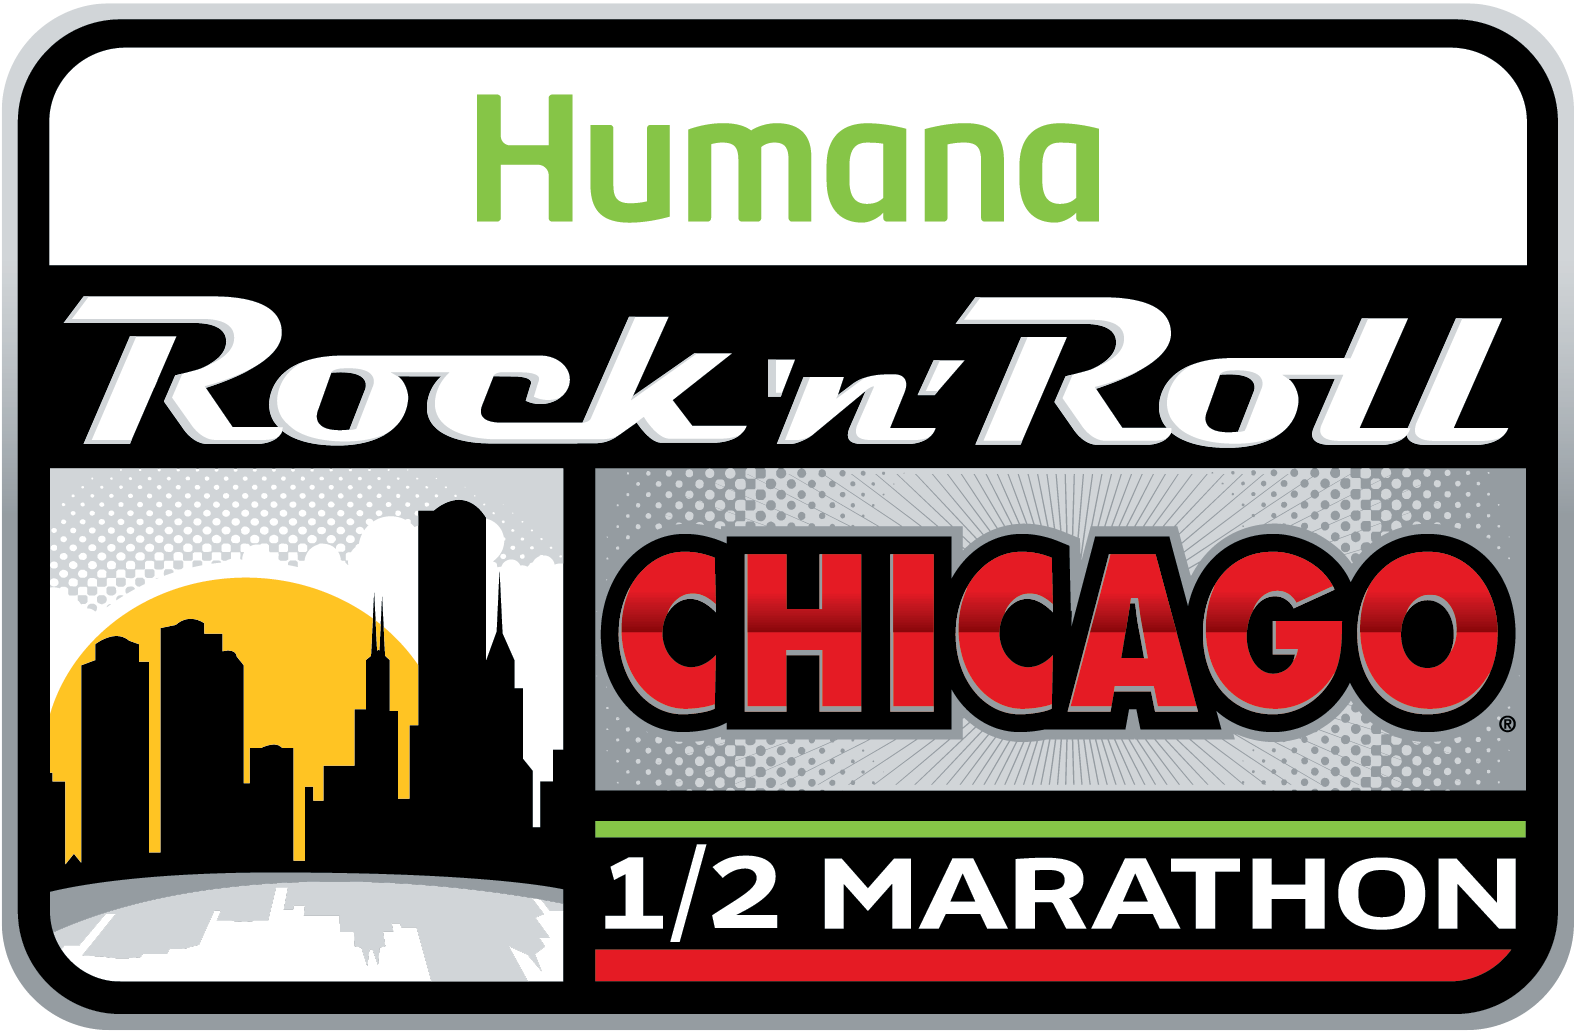 Rock 'n' Roll Chicago Half Marathon The Ford Island Bridge Run 10K is a Running race in Chicago, Illinois consisting of a 10K.